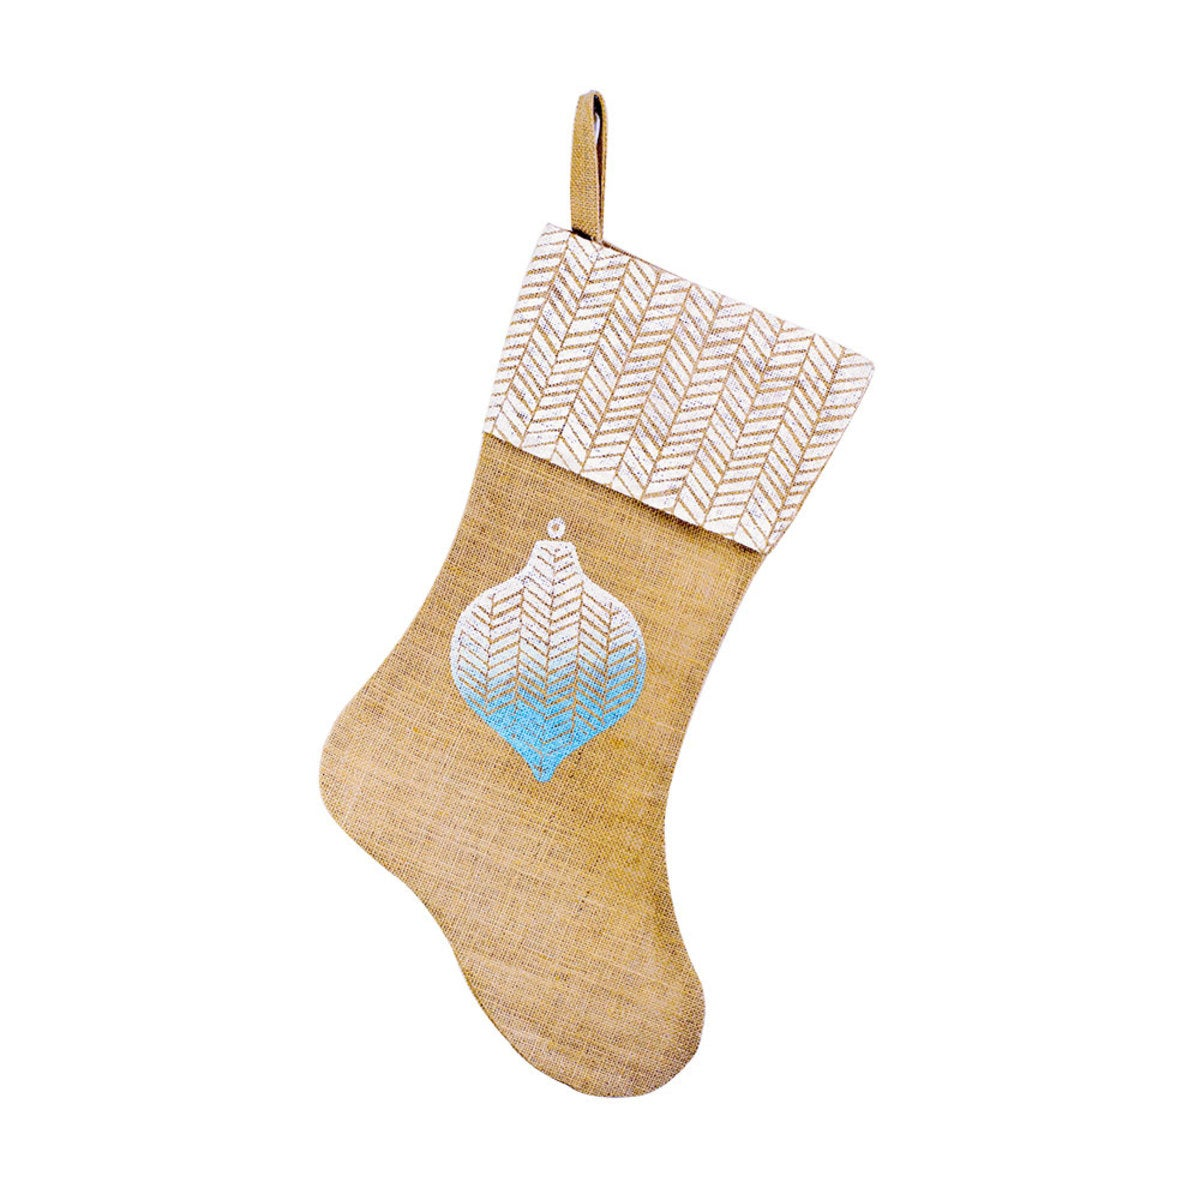 Herringbone Ornament Burlap Stocking - Blue Ombre